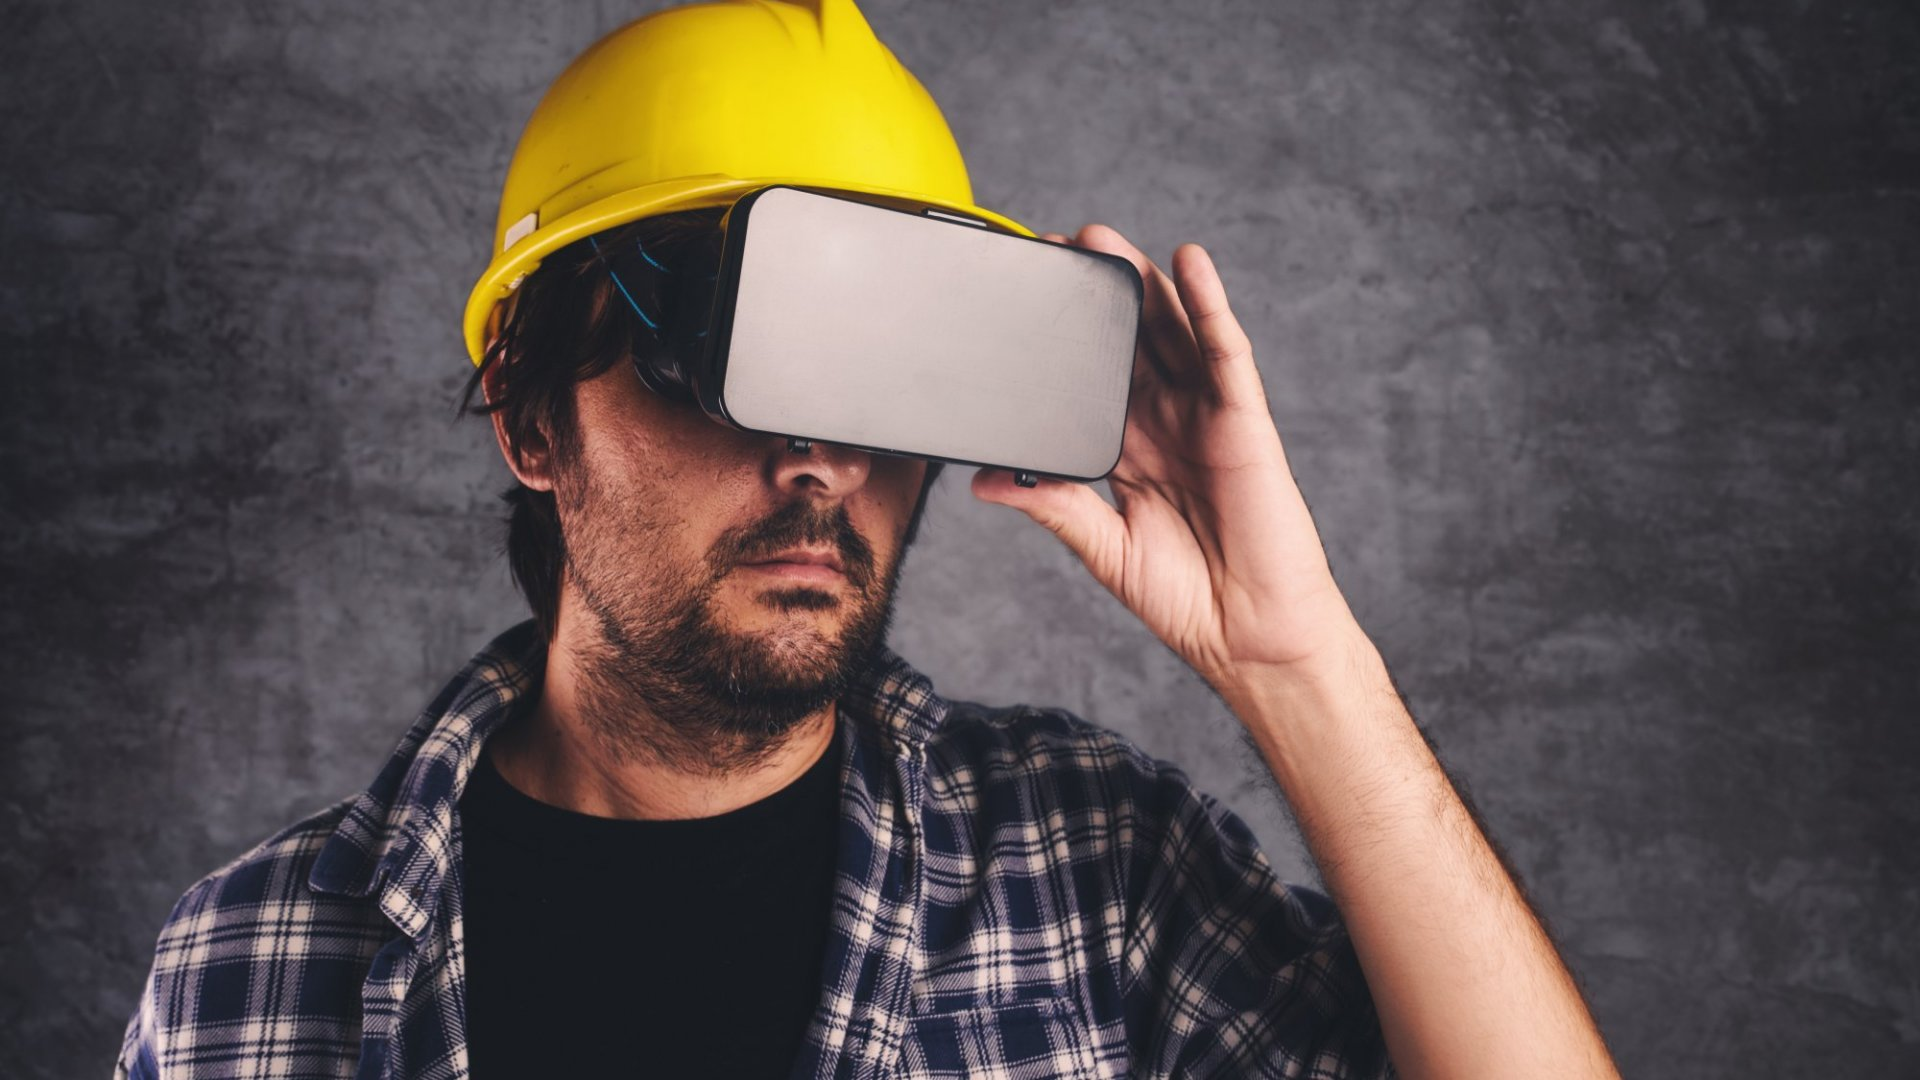 The $713 Billion Construction Industry Has Tech Fever